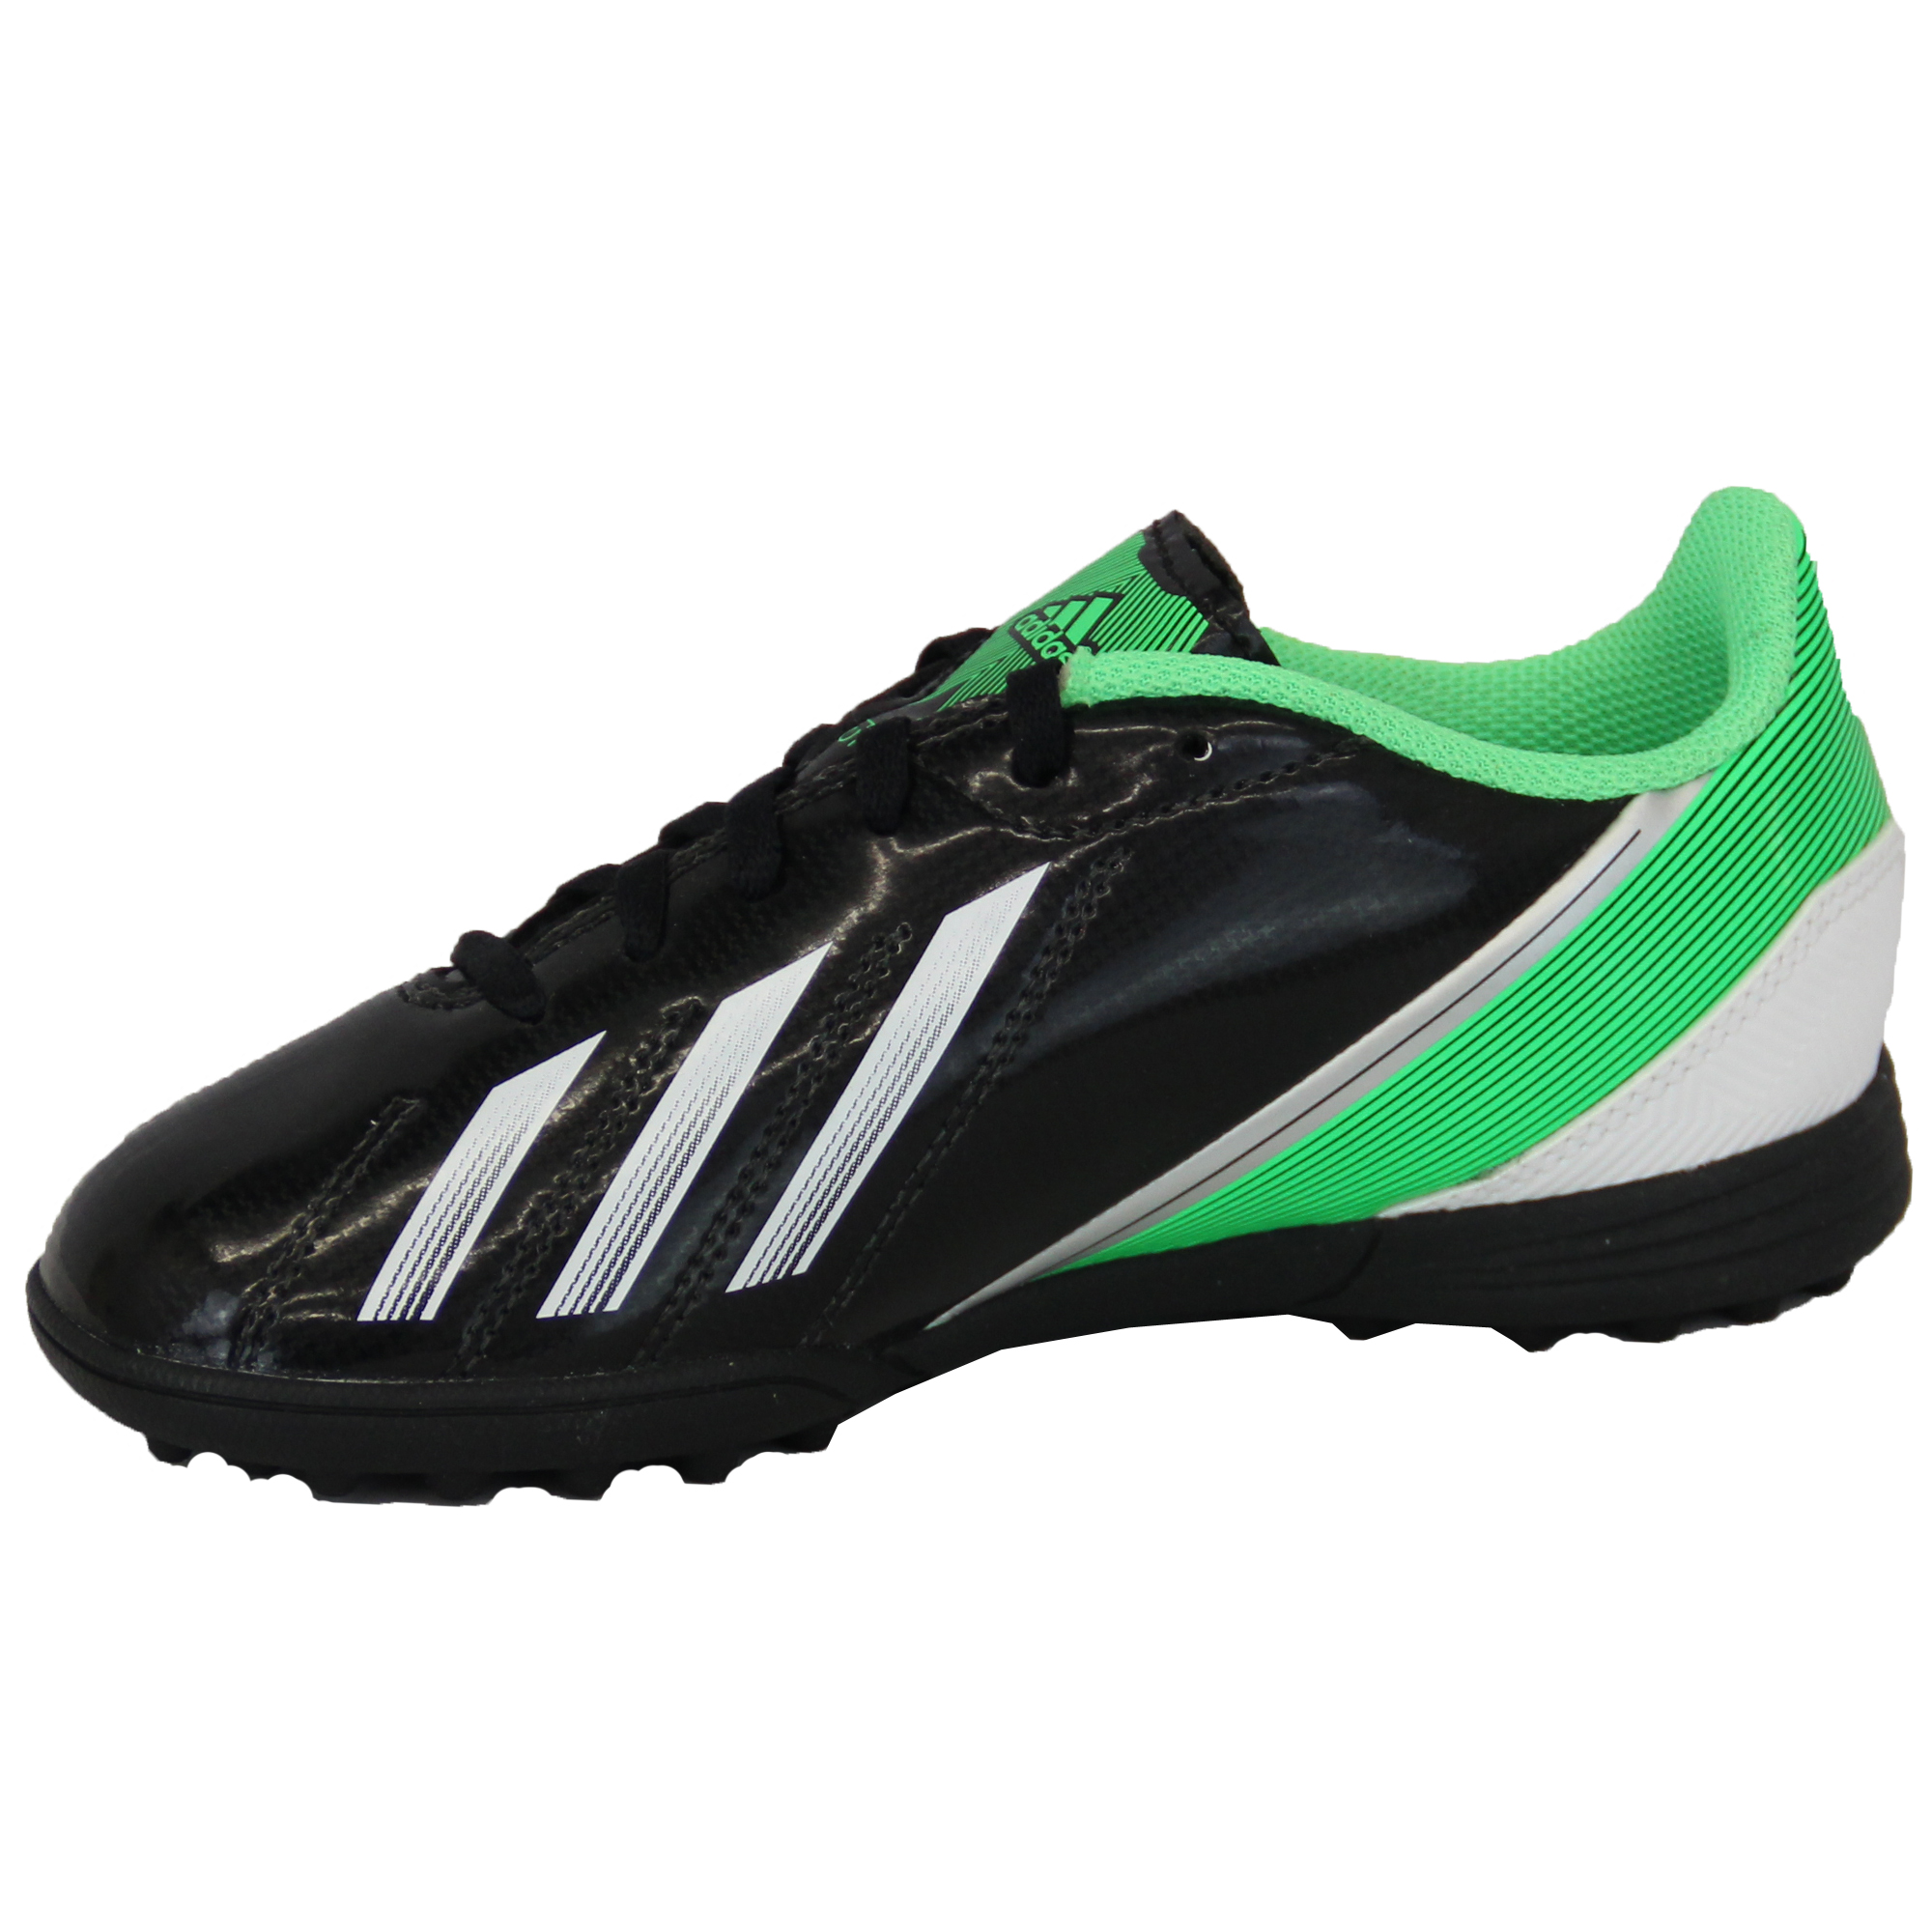 buy popular 0edea 245fc Boys-ADIDAS-Trainers-Kids-Football-Soccer-Astro-Turf-